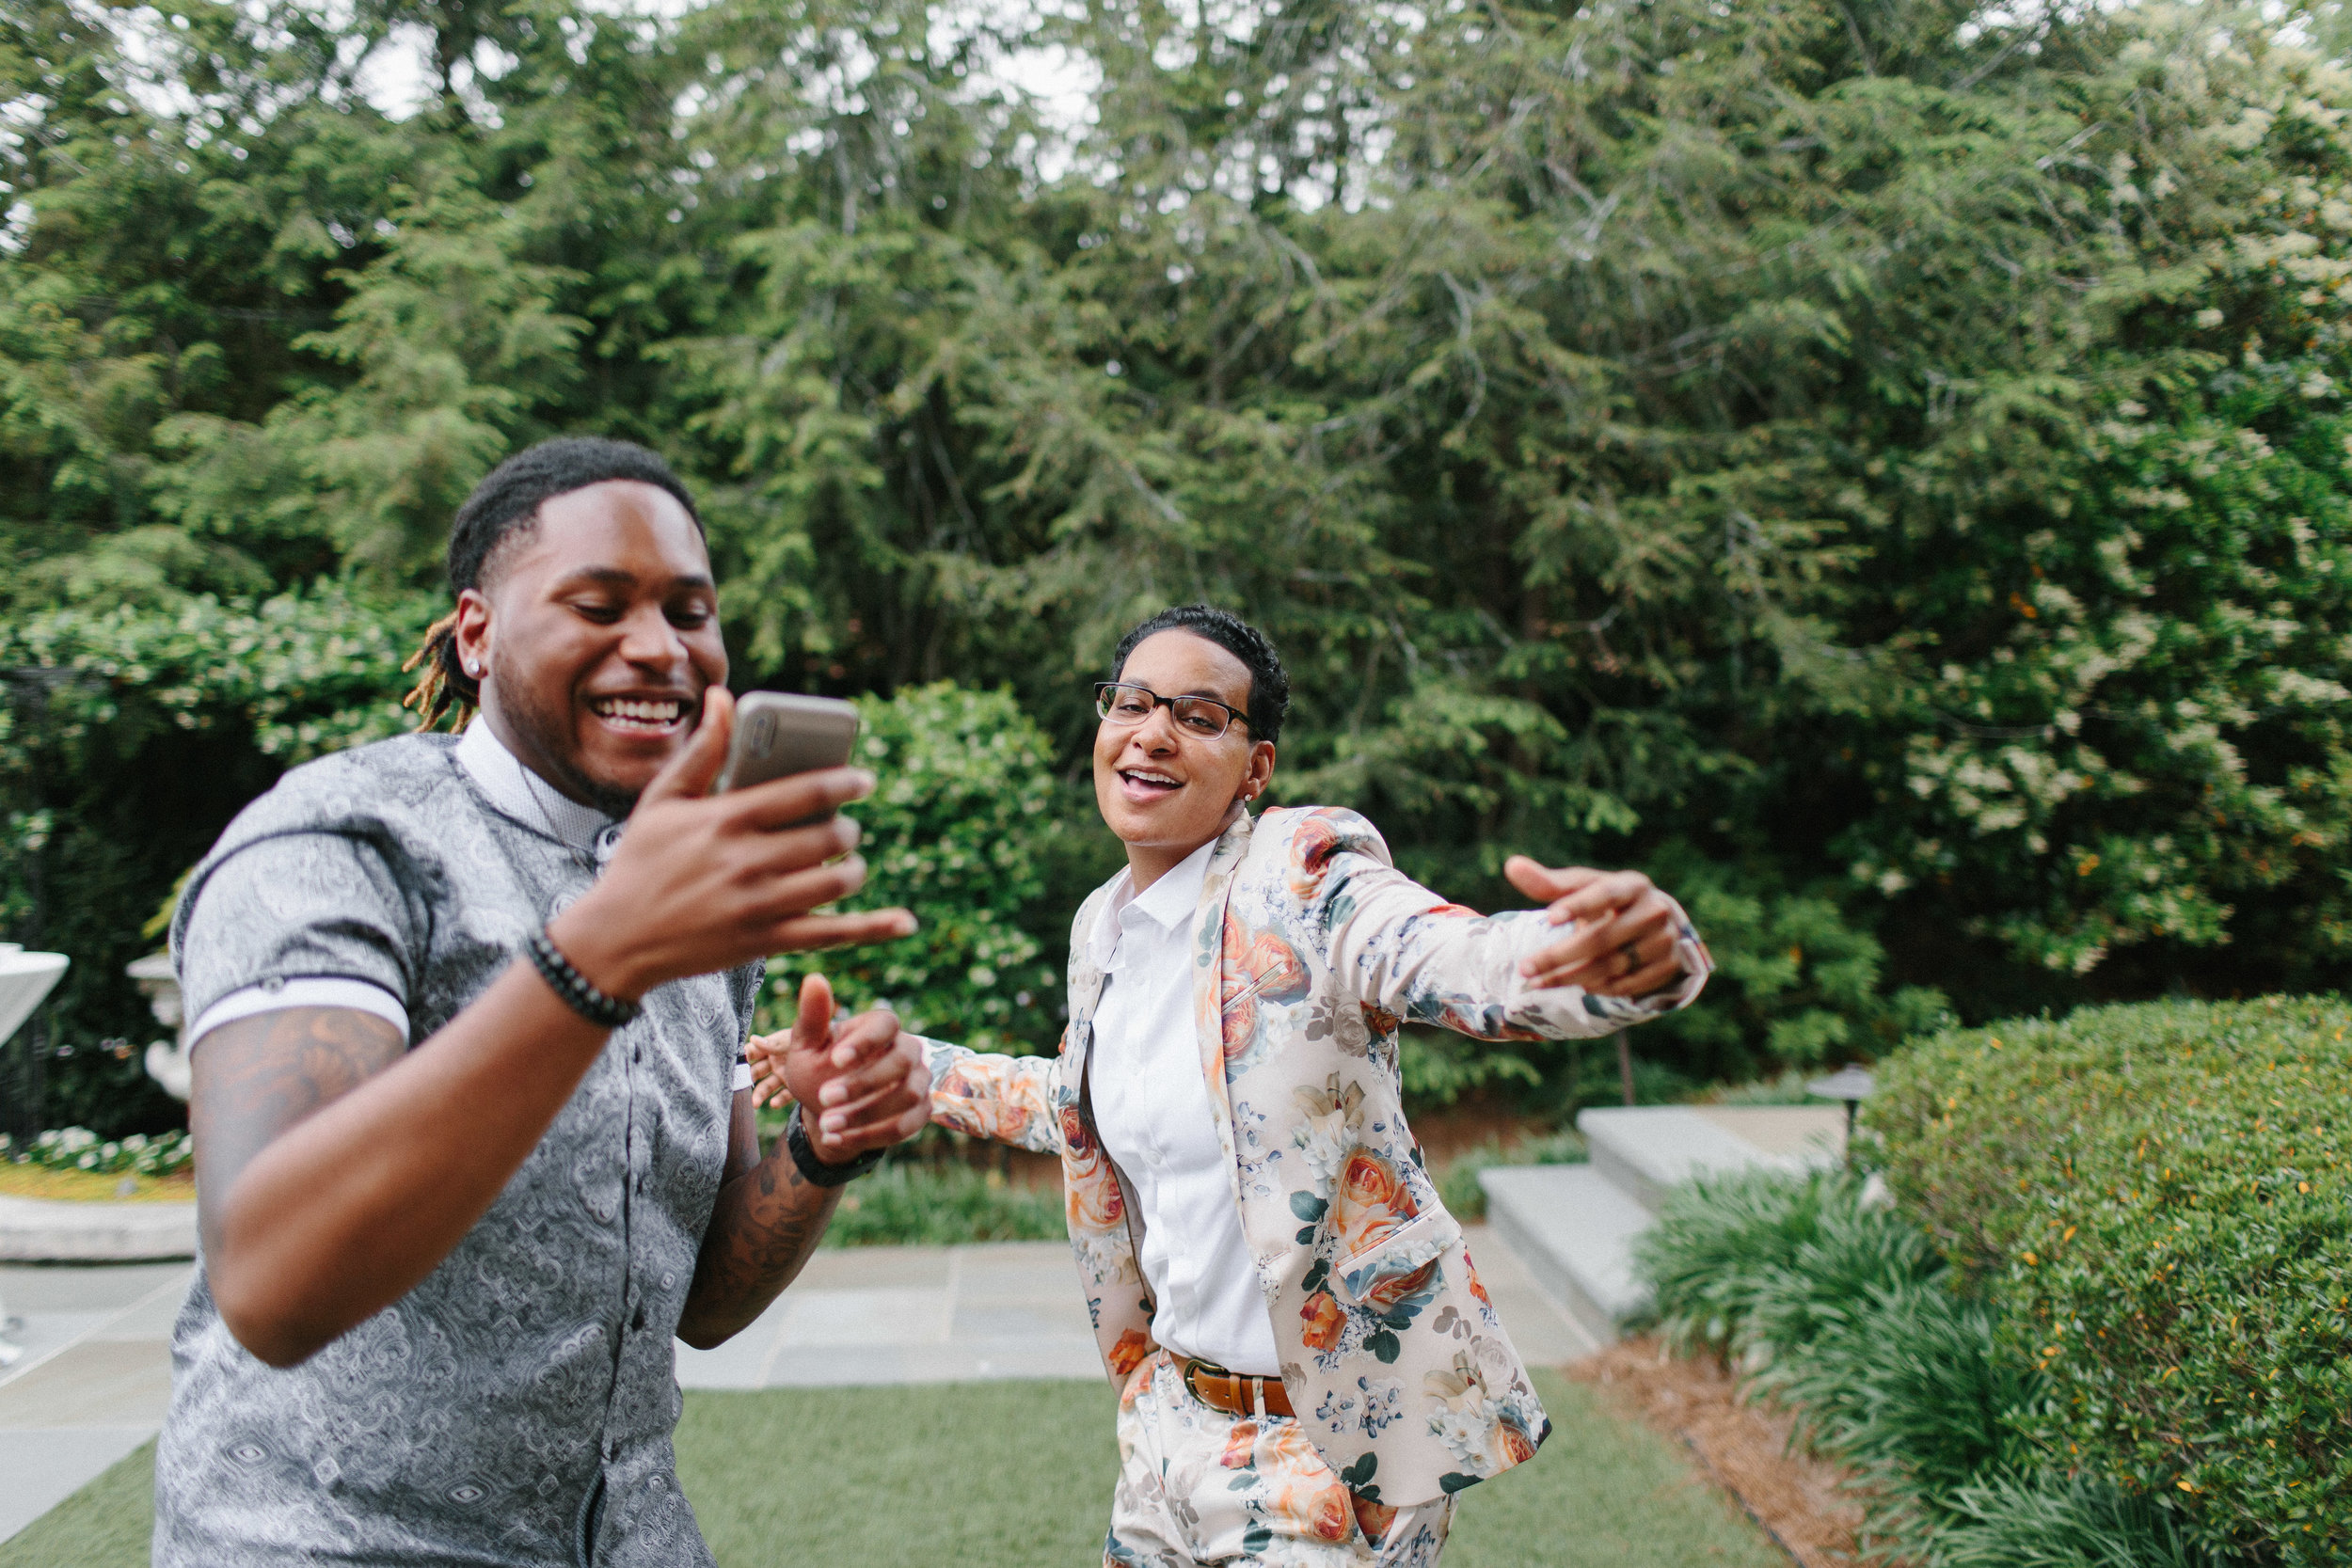 the_atrium_wedding_atlanta_norcross_lifestyle_photographers_lgbtq_1456.jpg